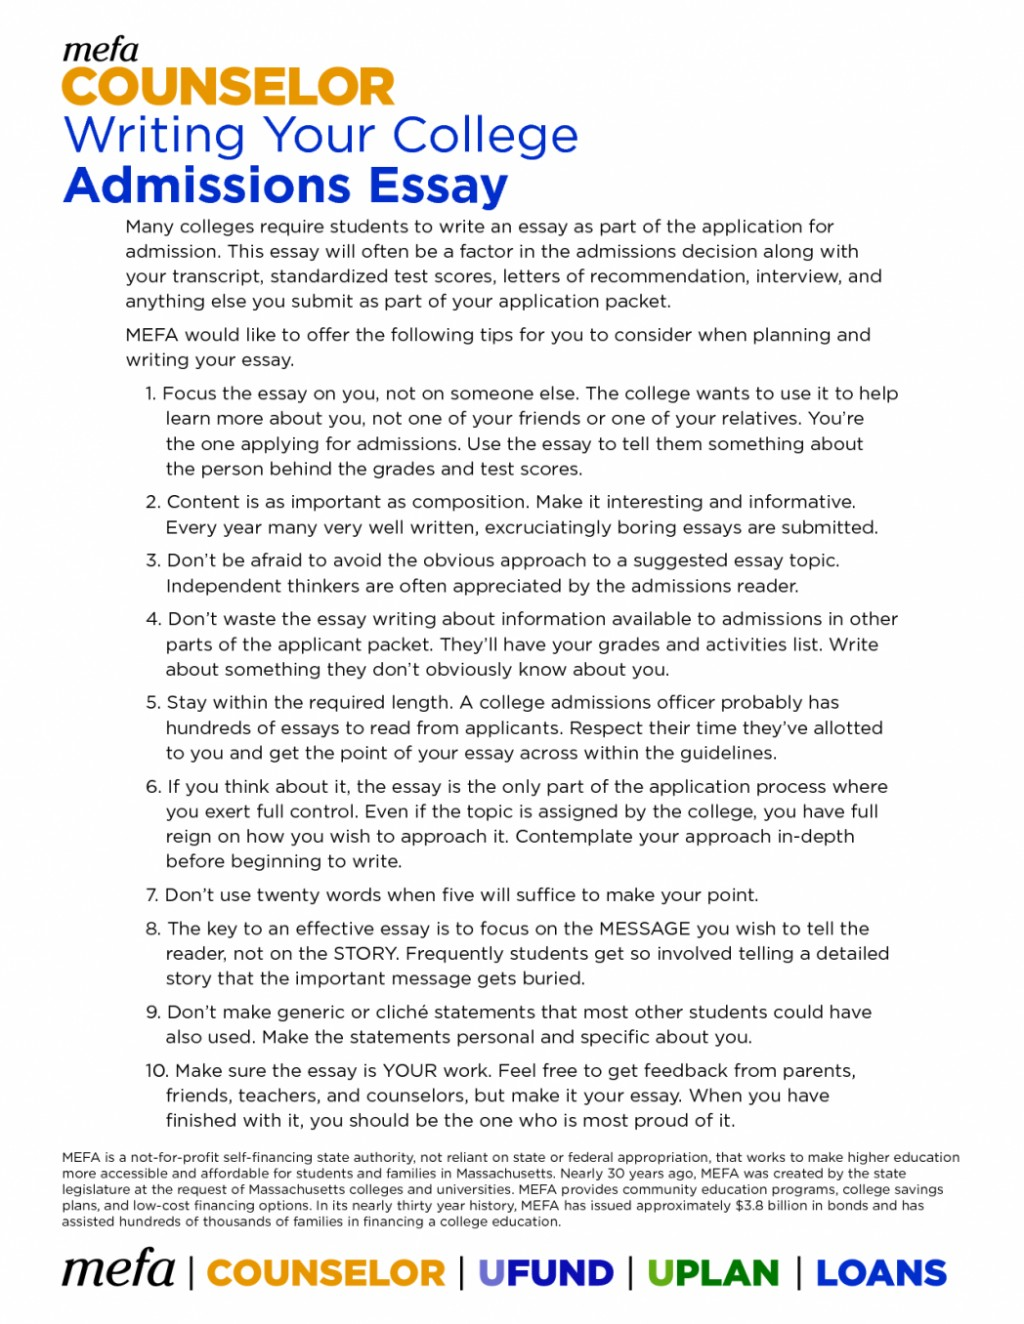 016 Essay Example College Writing Help High School How Many Paragraphs Should Application Wuaom Pages Words Long What About Formatted In Mla Format 1048x1356 Are An Unforgettable Informative Body Needed Large